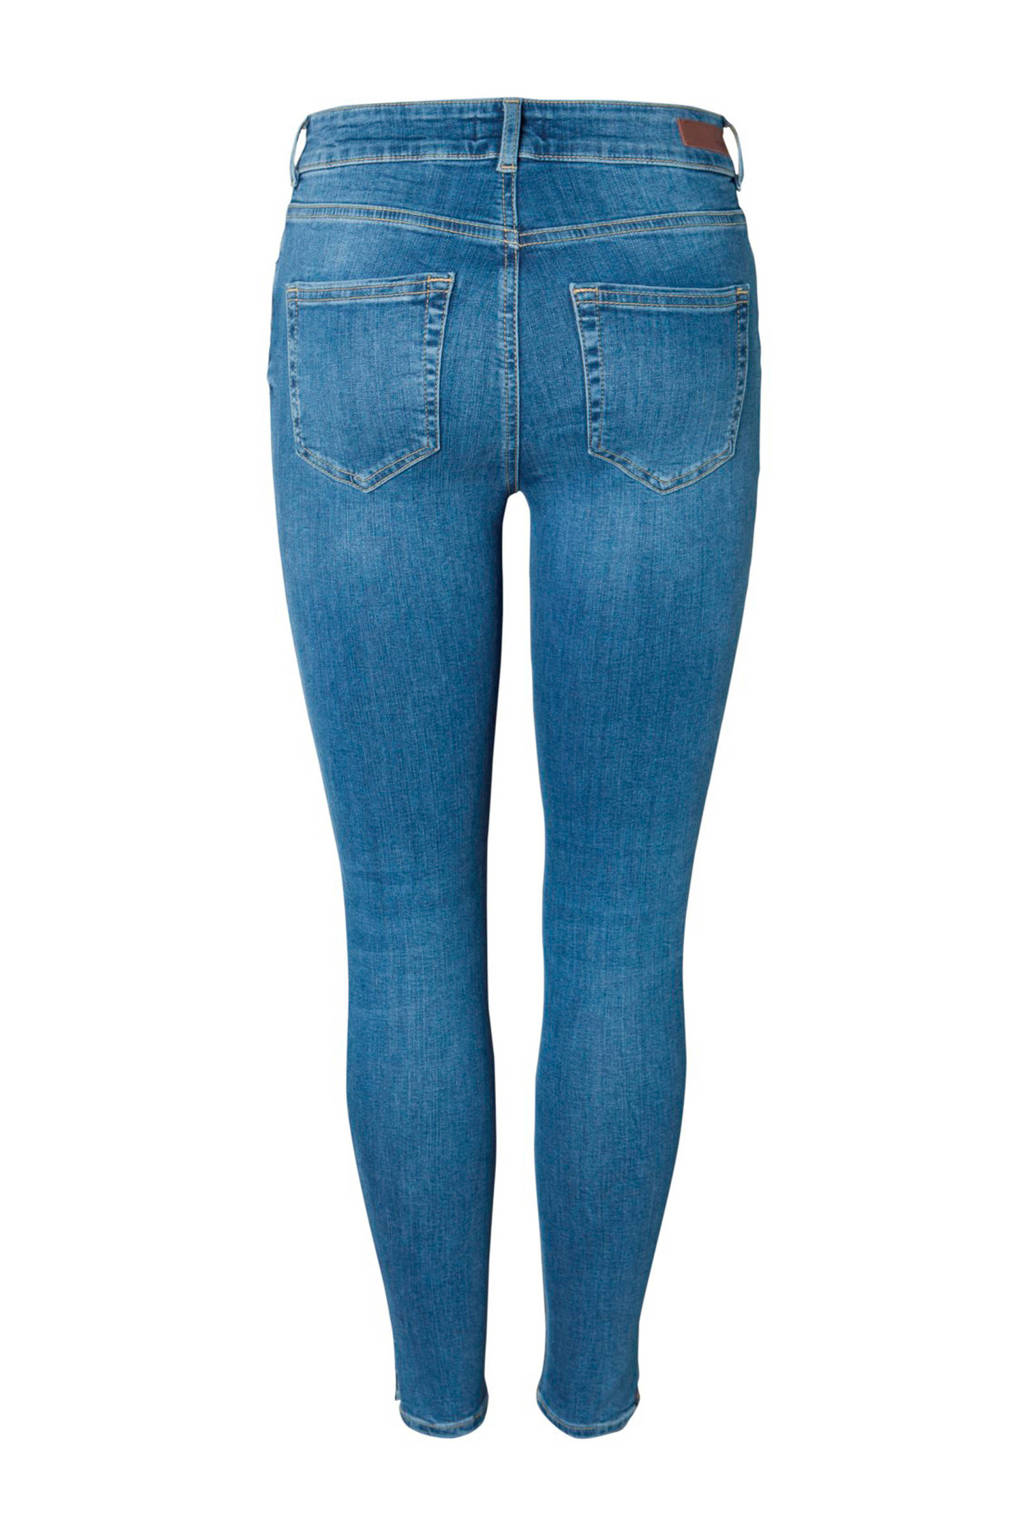 Pieces skinny fit jeans, Blauw